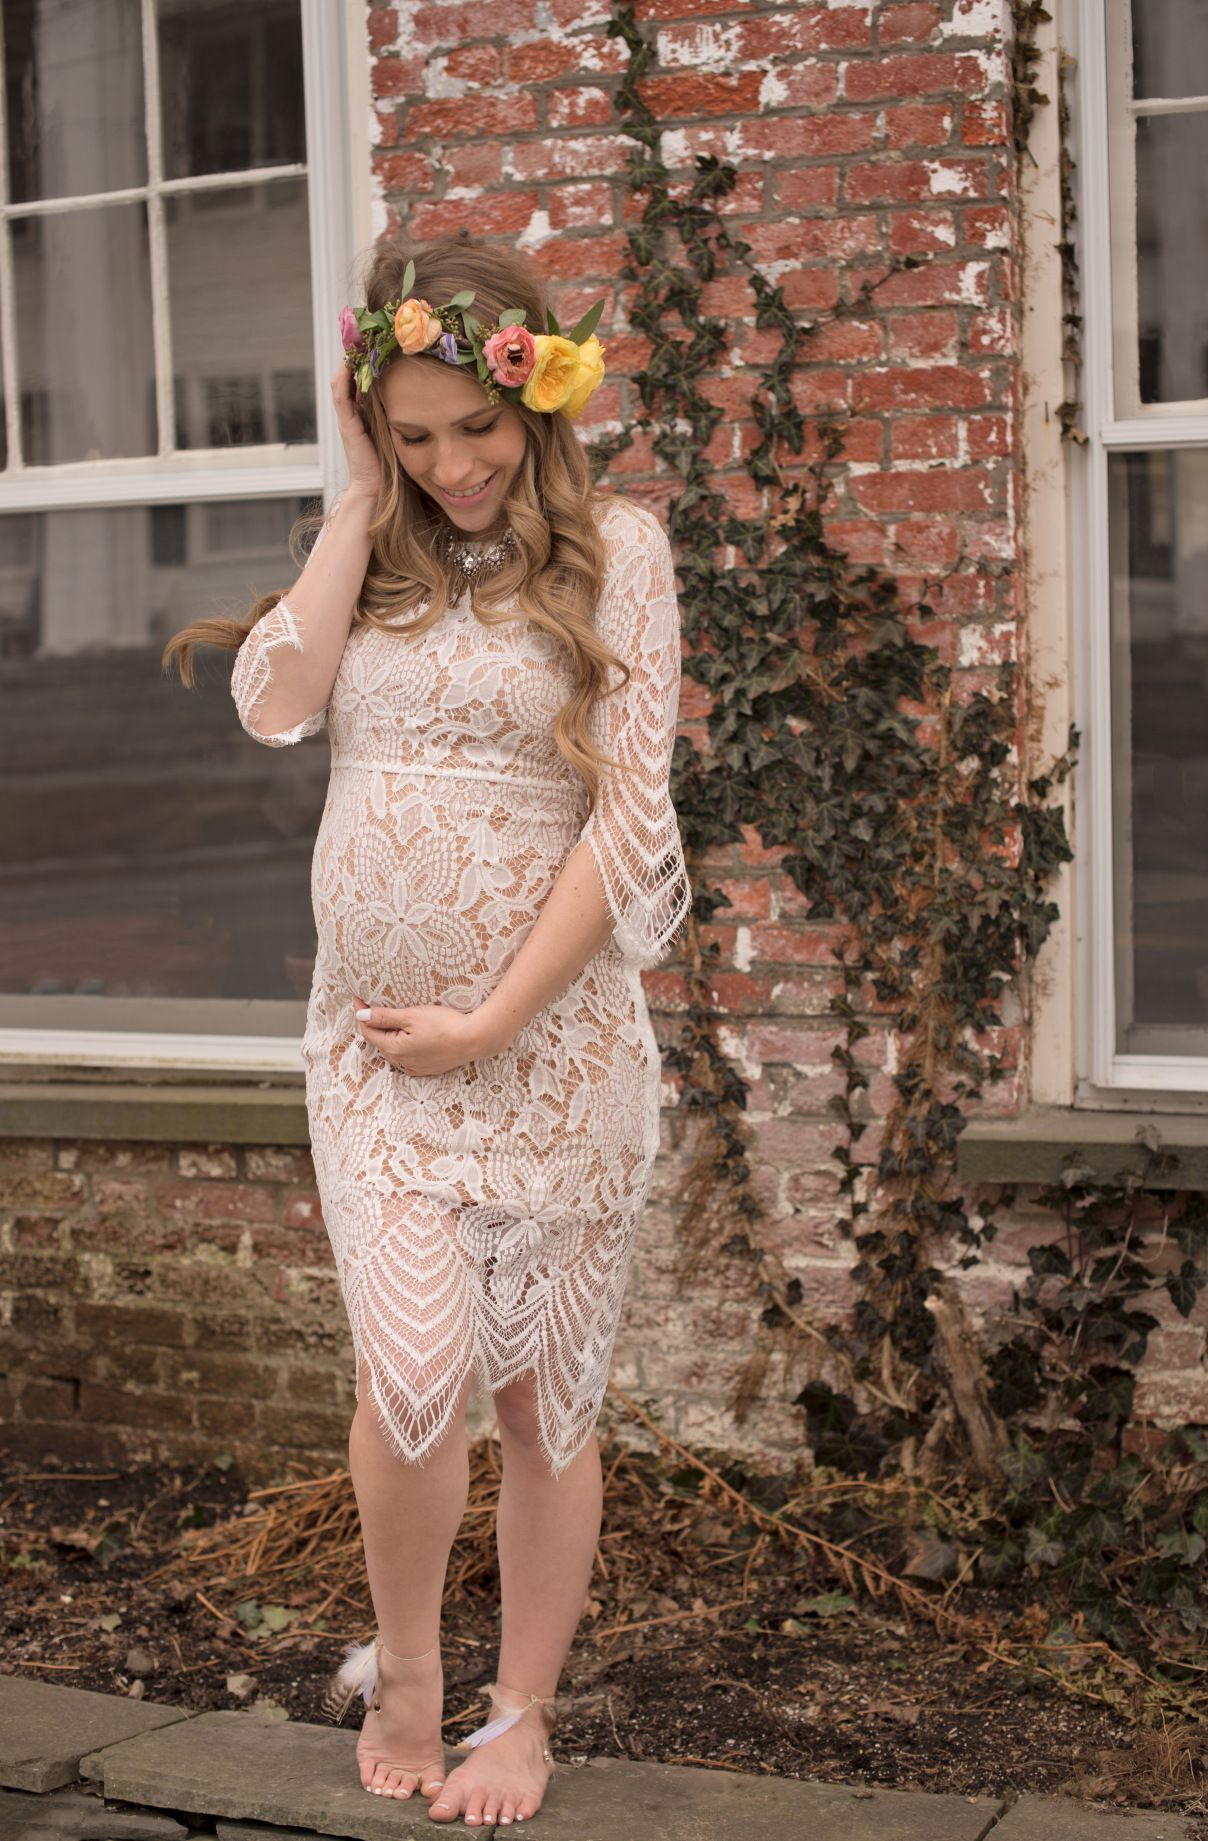 Full Size of Baby Shower:trendy Maternity Clothes Affordable Maternity Clothes Baby Shower Outfit For Mom Winter Maternity Evening Gowns Baby Shower Dresses Cute Inexpensive Maternity Clothes Maternity Evening Gowns Plus Size Maternity Dresses For Baby Shower